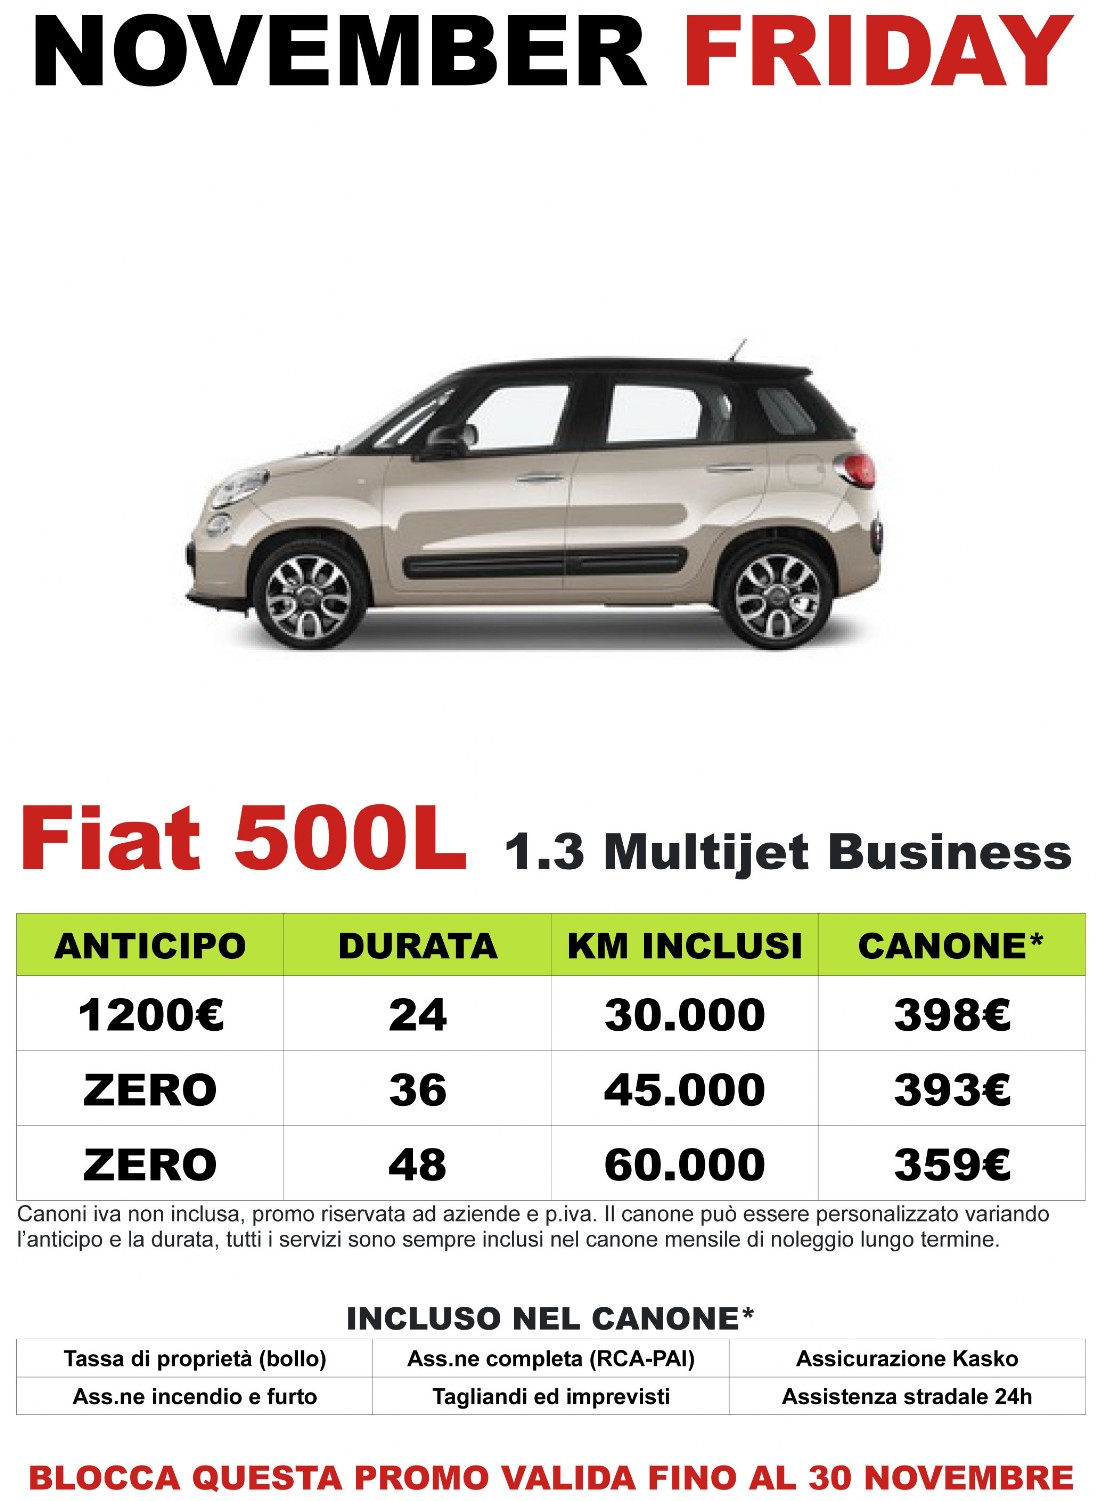 November Friday sconti FIAT 500L